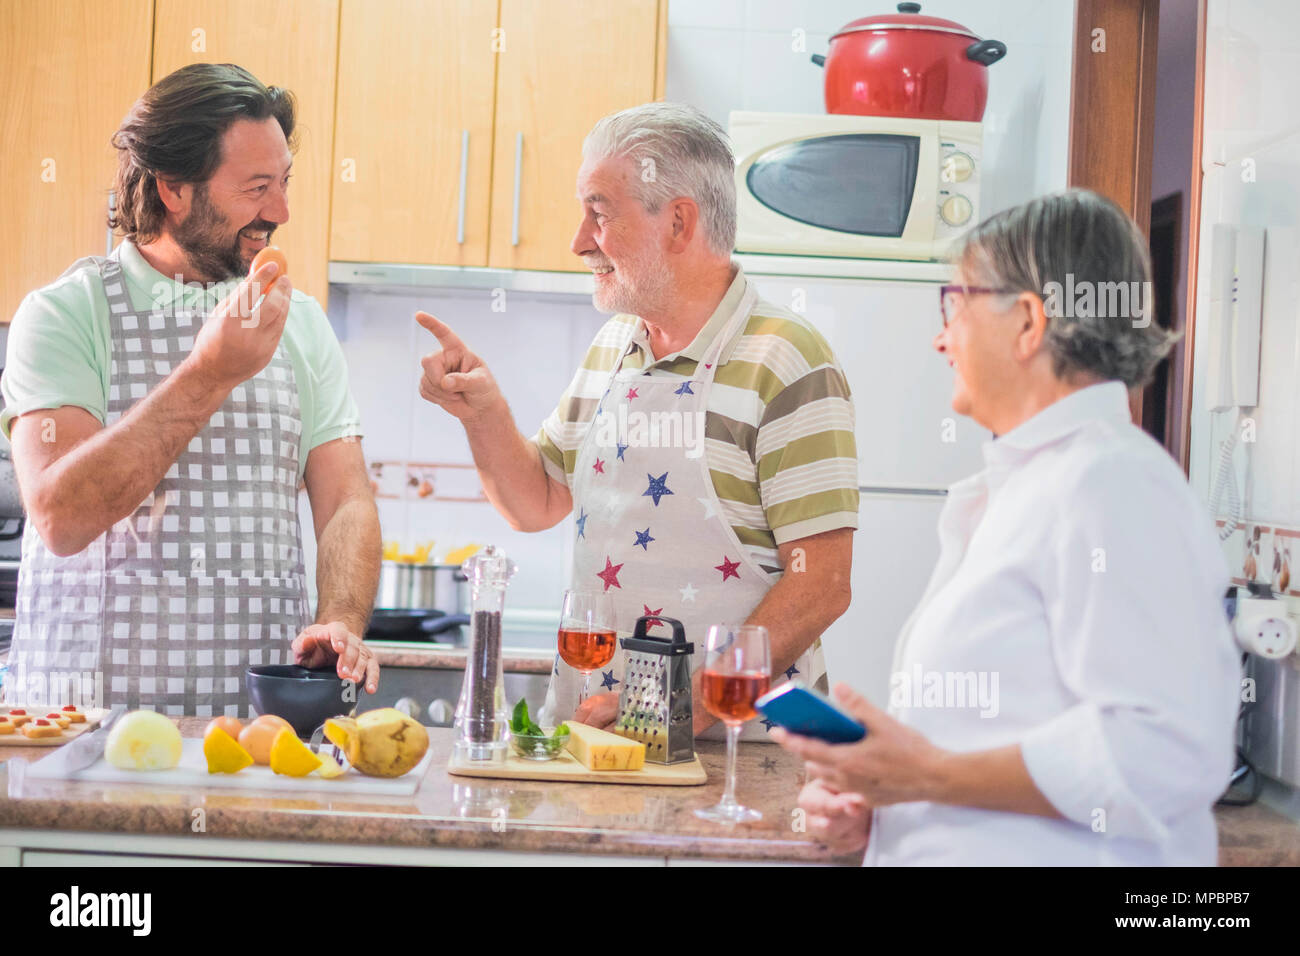 Indoor kitchen scene tiwh a family cooking. Father, mother and son. Senior couple and middle aged male. Joking and telling daily concept. - Stock Image